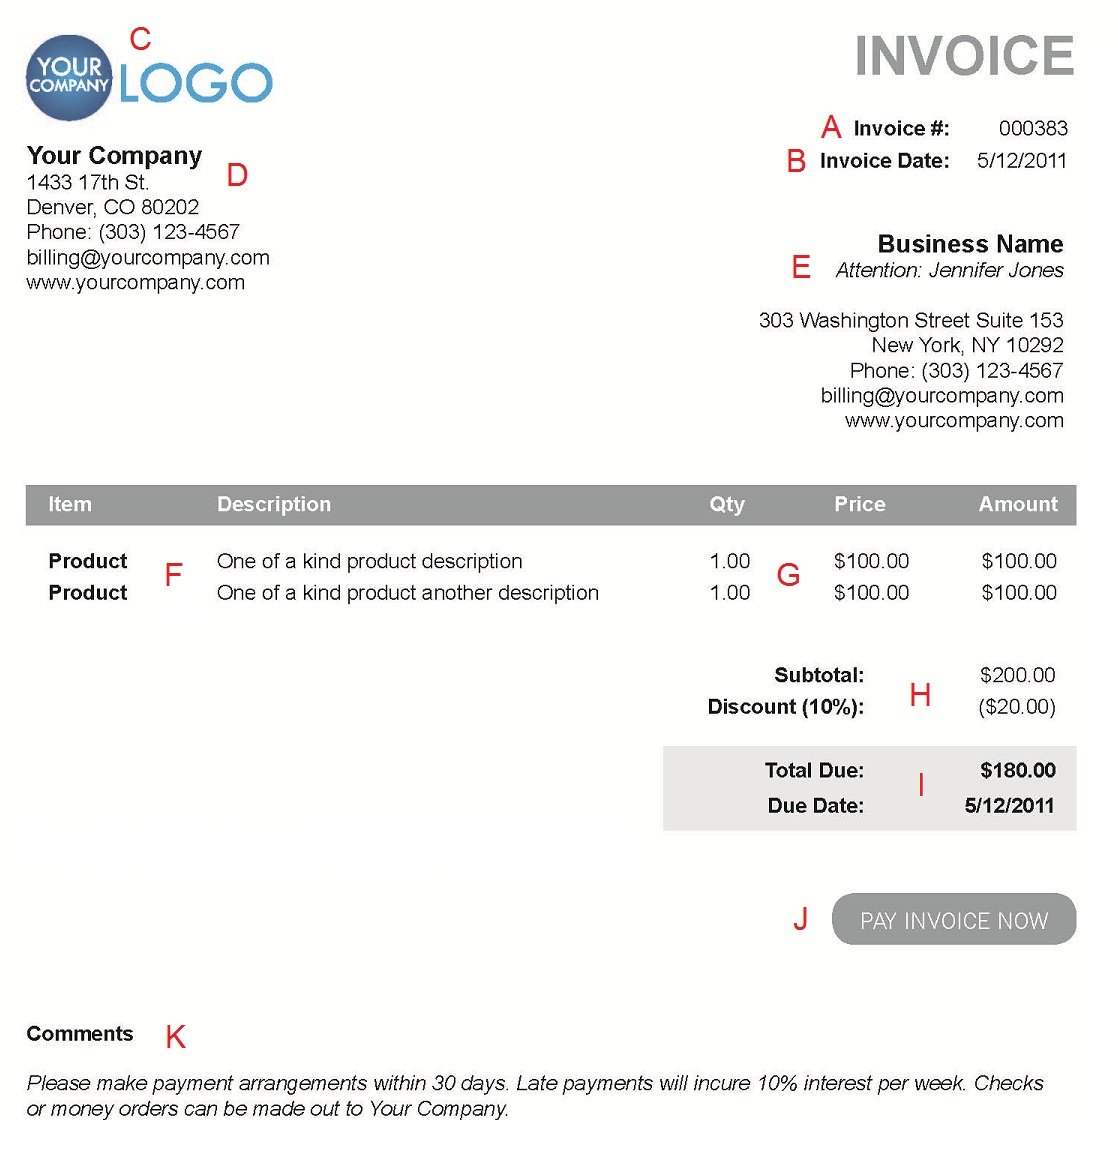 Centralasianshepherdus  Marvellous The  Different Sections Of An Electronic Payment Invoice With Extraordinary A  With Breathtaking Making An Invoice In Excel Also Templates For Invoice In Addition Tax Invoice Requirements Australia And Parking Invoice Ticket As Well As Sample Invoice Template Microsoft Word Additionally Nab Invoice Finance From Paysimplecom With Centralasianshepherdus  Extraordinary The  Different Sections Of An Electronic Payment Invoice With Breathtaking A  And Marvellous Making An Invoice In Excel Also Templates For Invoice In Addition Tax Invoice Requirements Australia From Paysimplecom